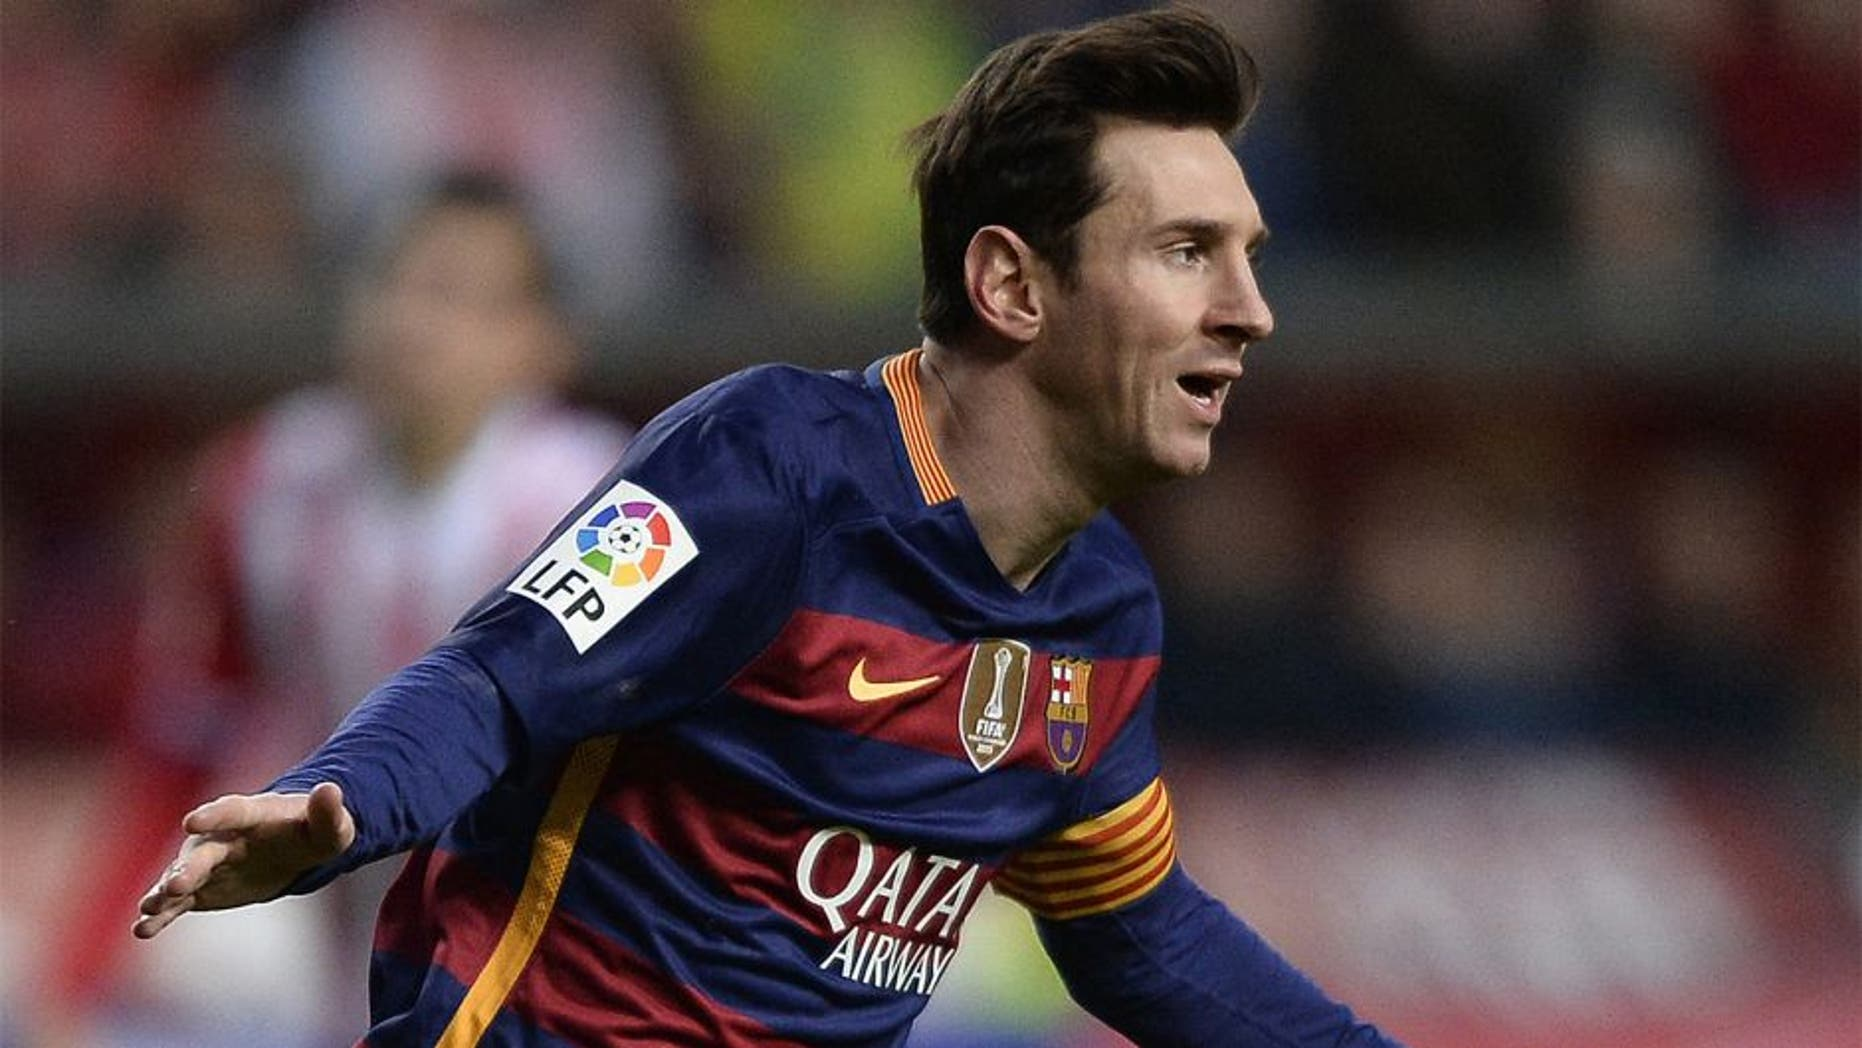 Barcelona's Argentinian forward Lionel Messi celebrates after scoring a goal during the Spanish league football match Real Sporting de Gijon vs FC Barcelona at El Molinon stadium in Gijonon 2016. AFP PHOTO / MIGUEL RIOPA / AFP / MIGUEL RIOPA (Photo credit should read MIGUEL RIOPA/AFP/Getty Images)